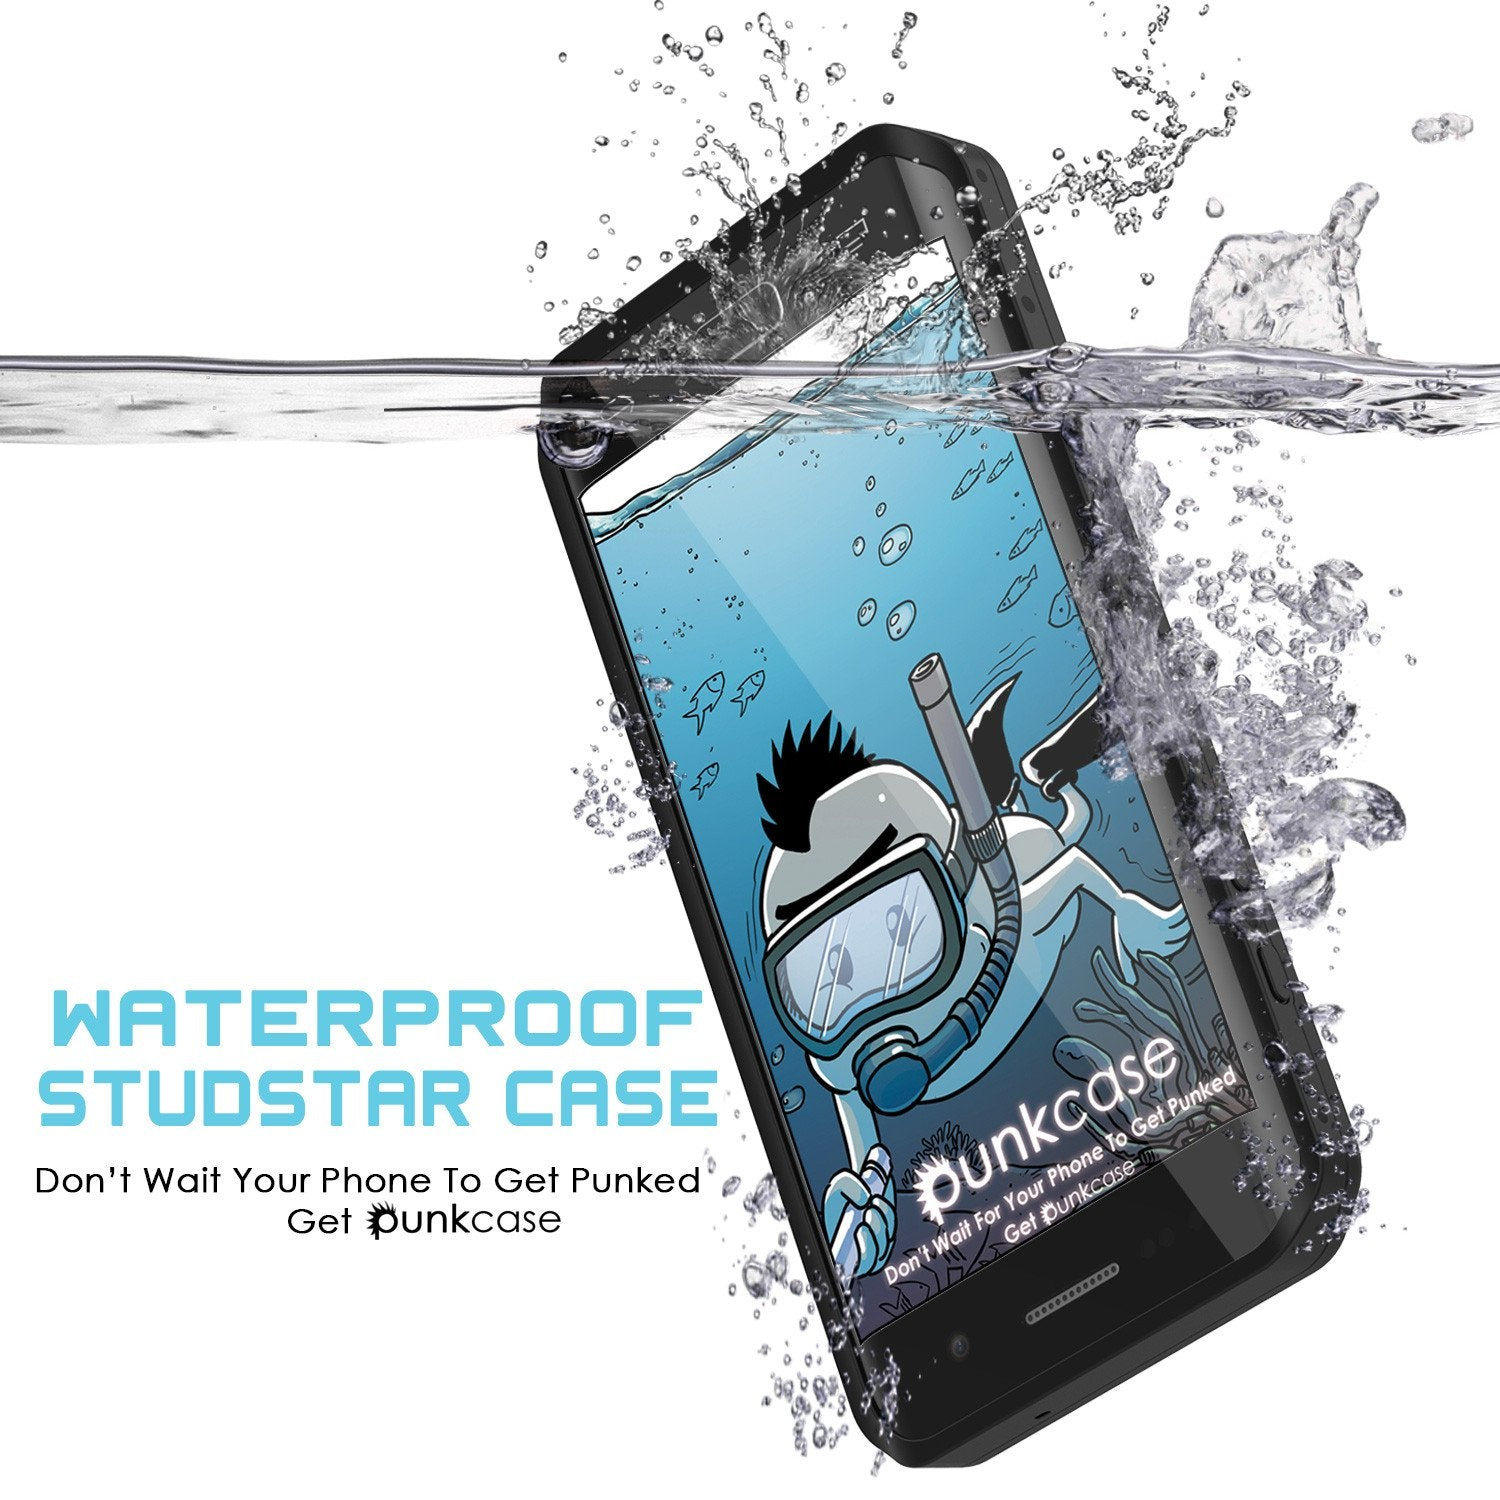 Galaxy S7 EDGE Waterproof Case PunkCase StudStar Black Thin 6.6ft Underwater IP68 Shock/Snow Proof - PunkCase NZ